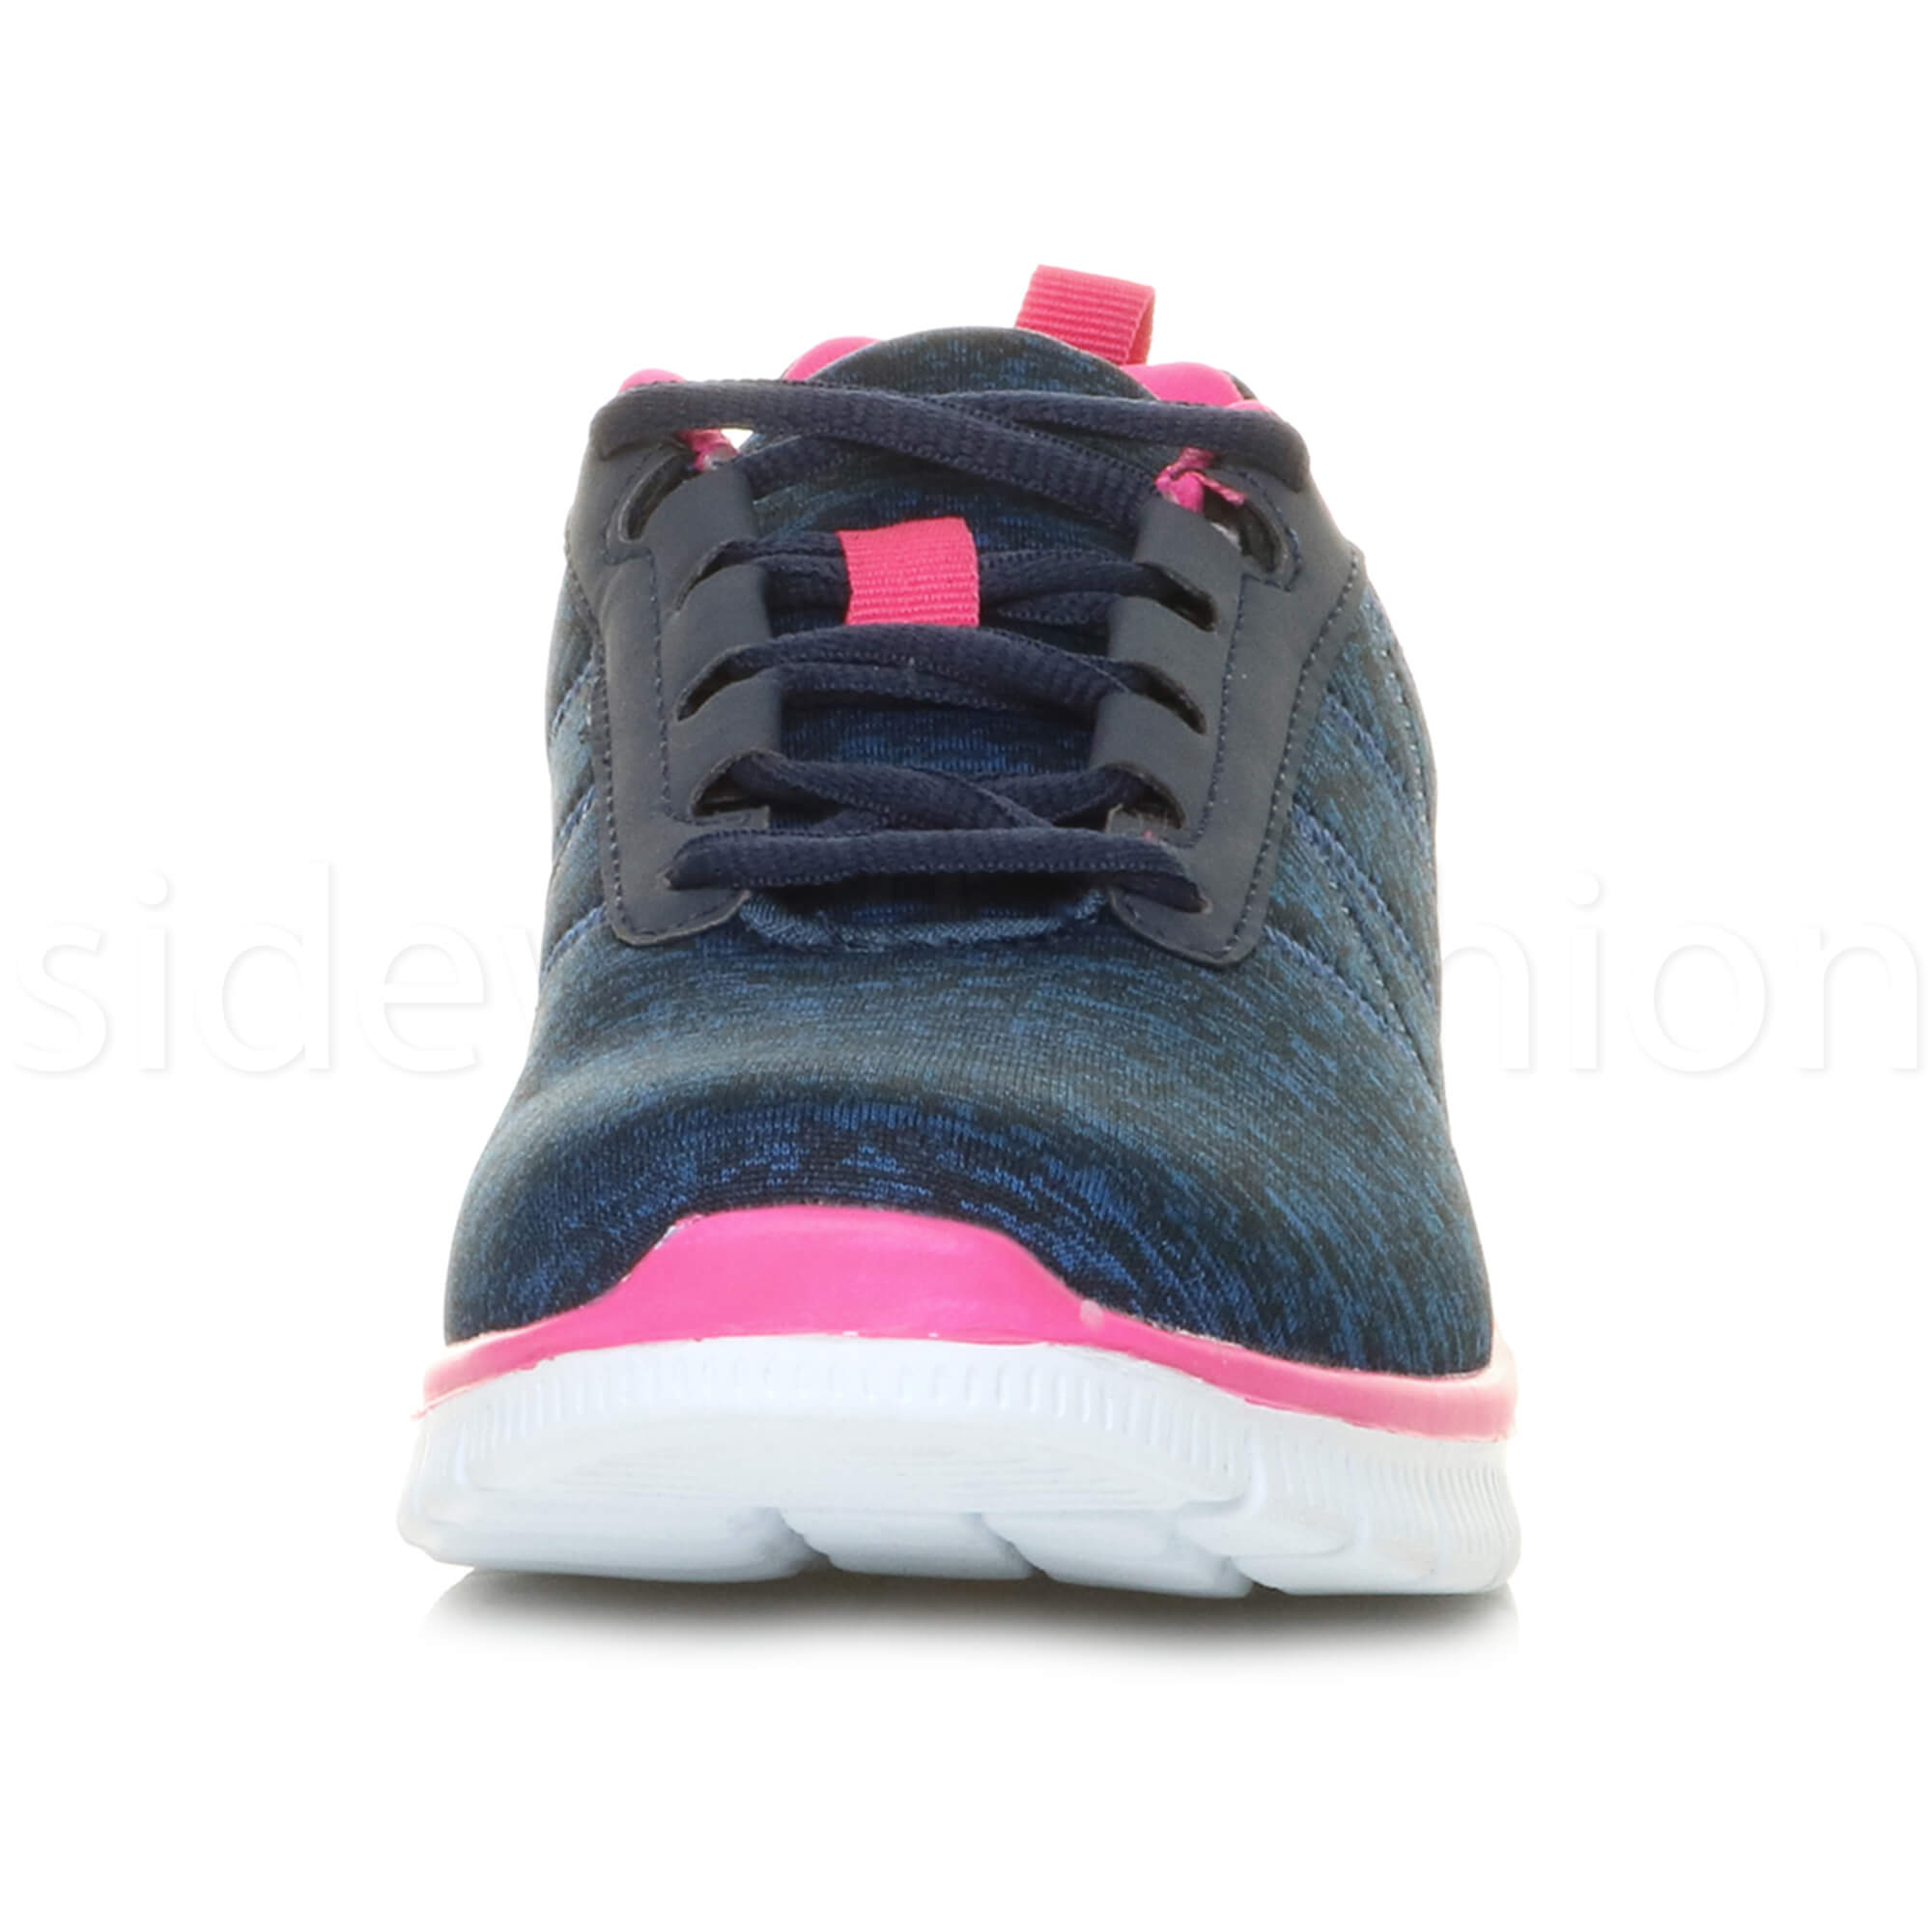 Womens-ladies-comfort-memory-foam-lace-up-trainers-activewear-sneakers-gym-shoes thumbnail 69